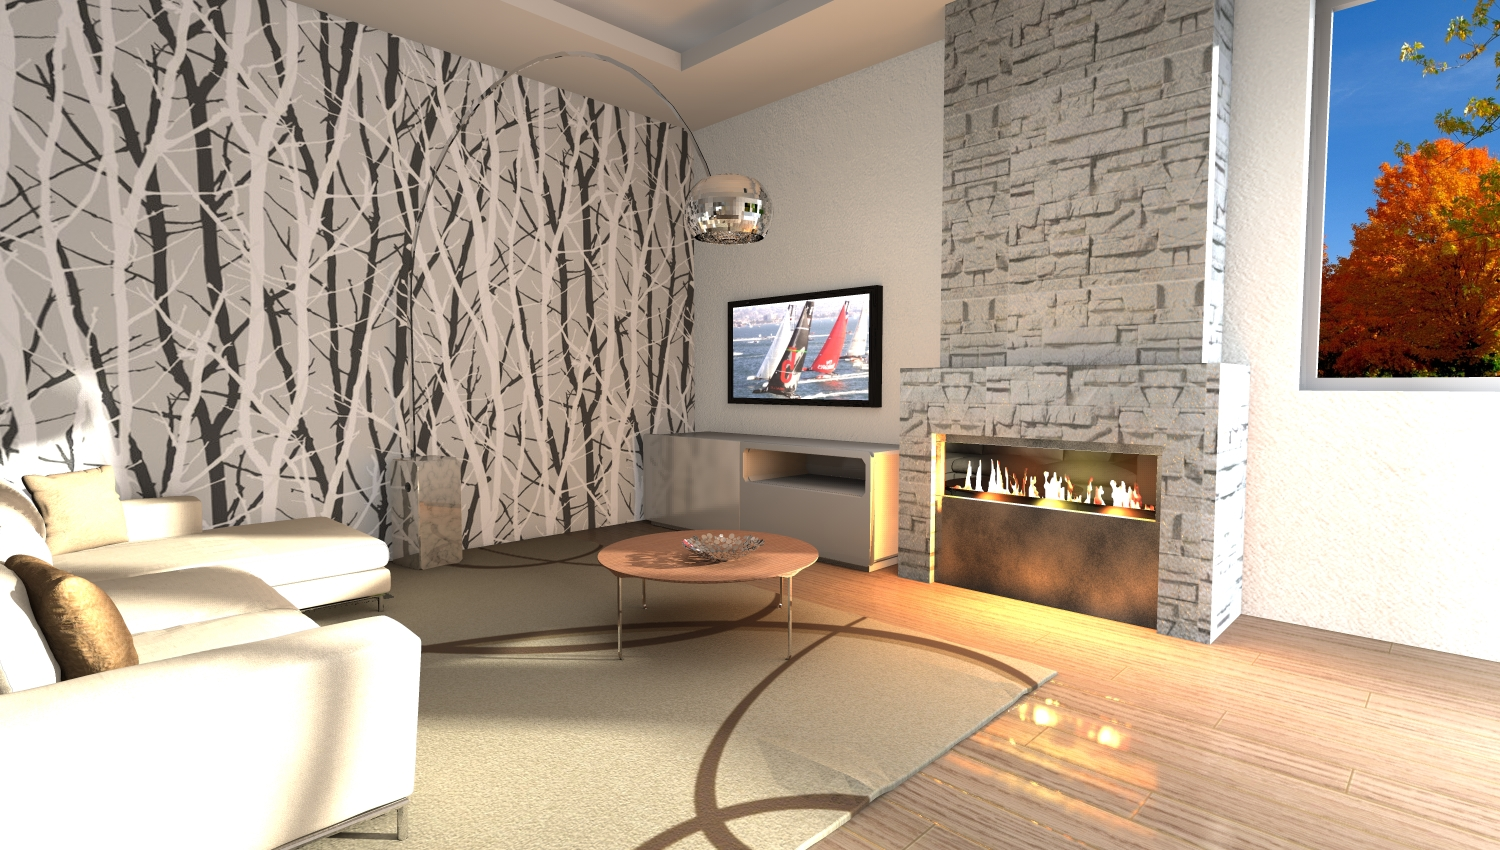 Interior design progetto arredamento casa for Design case interni